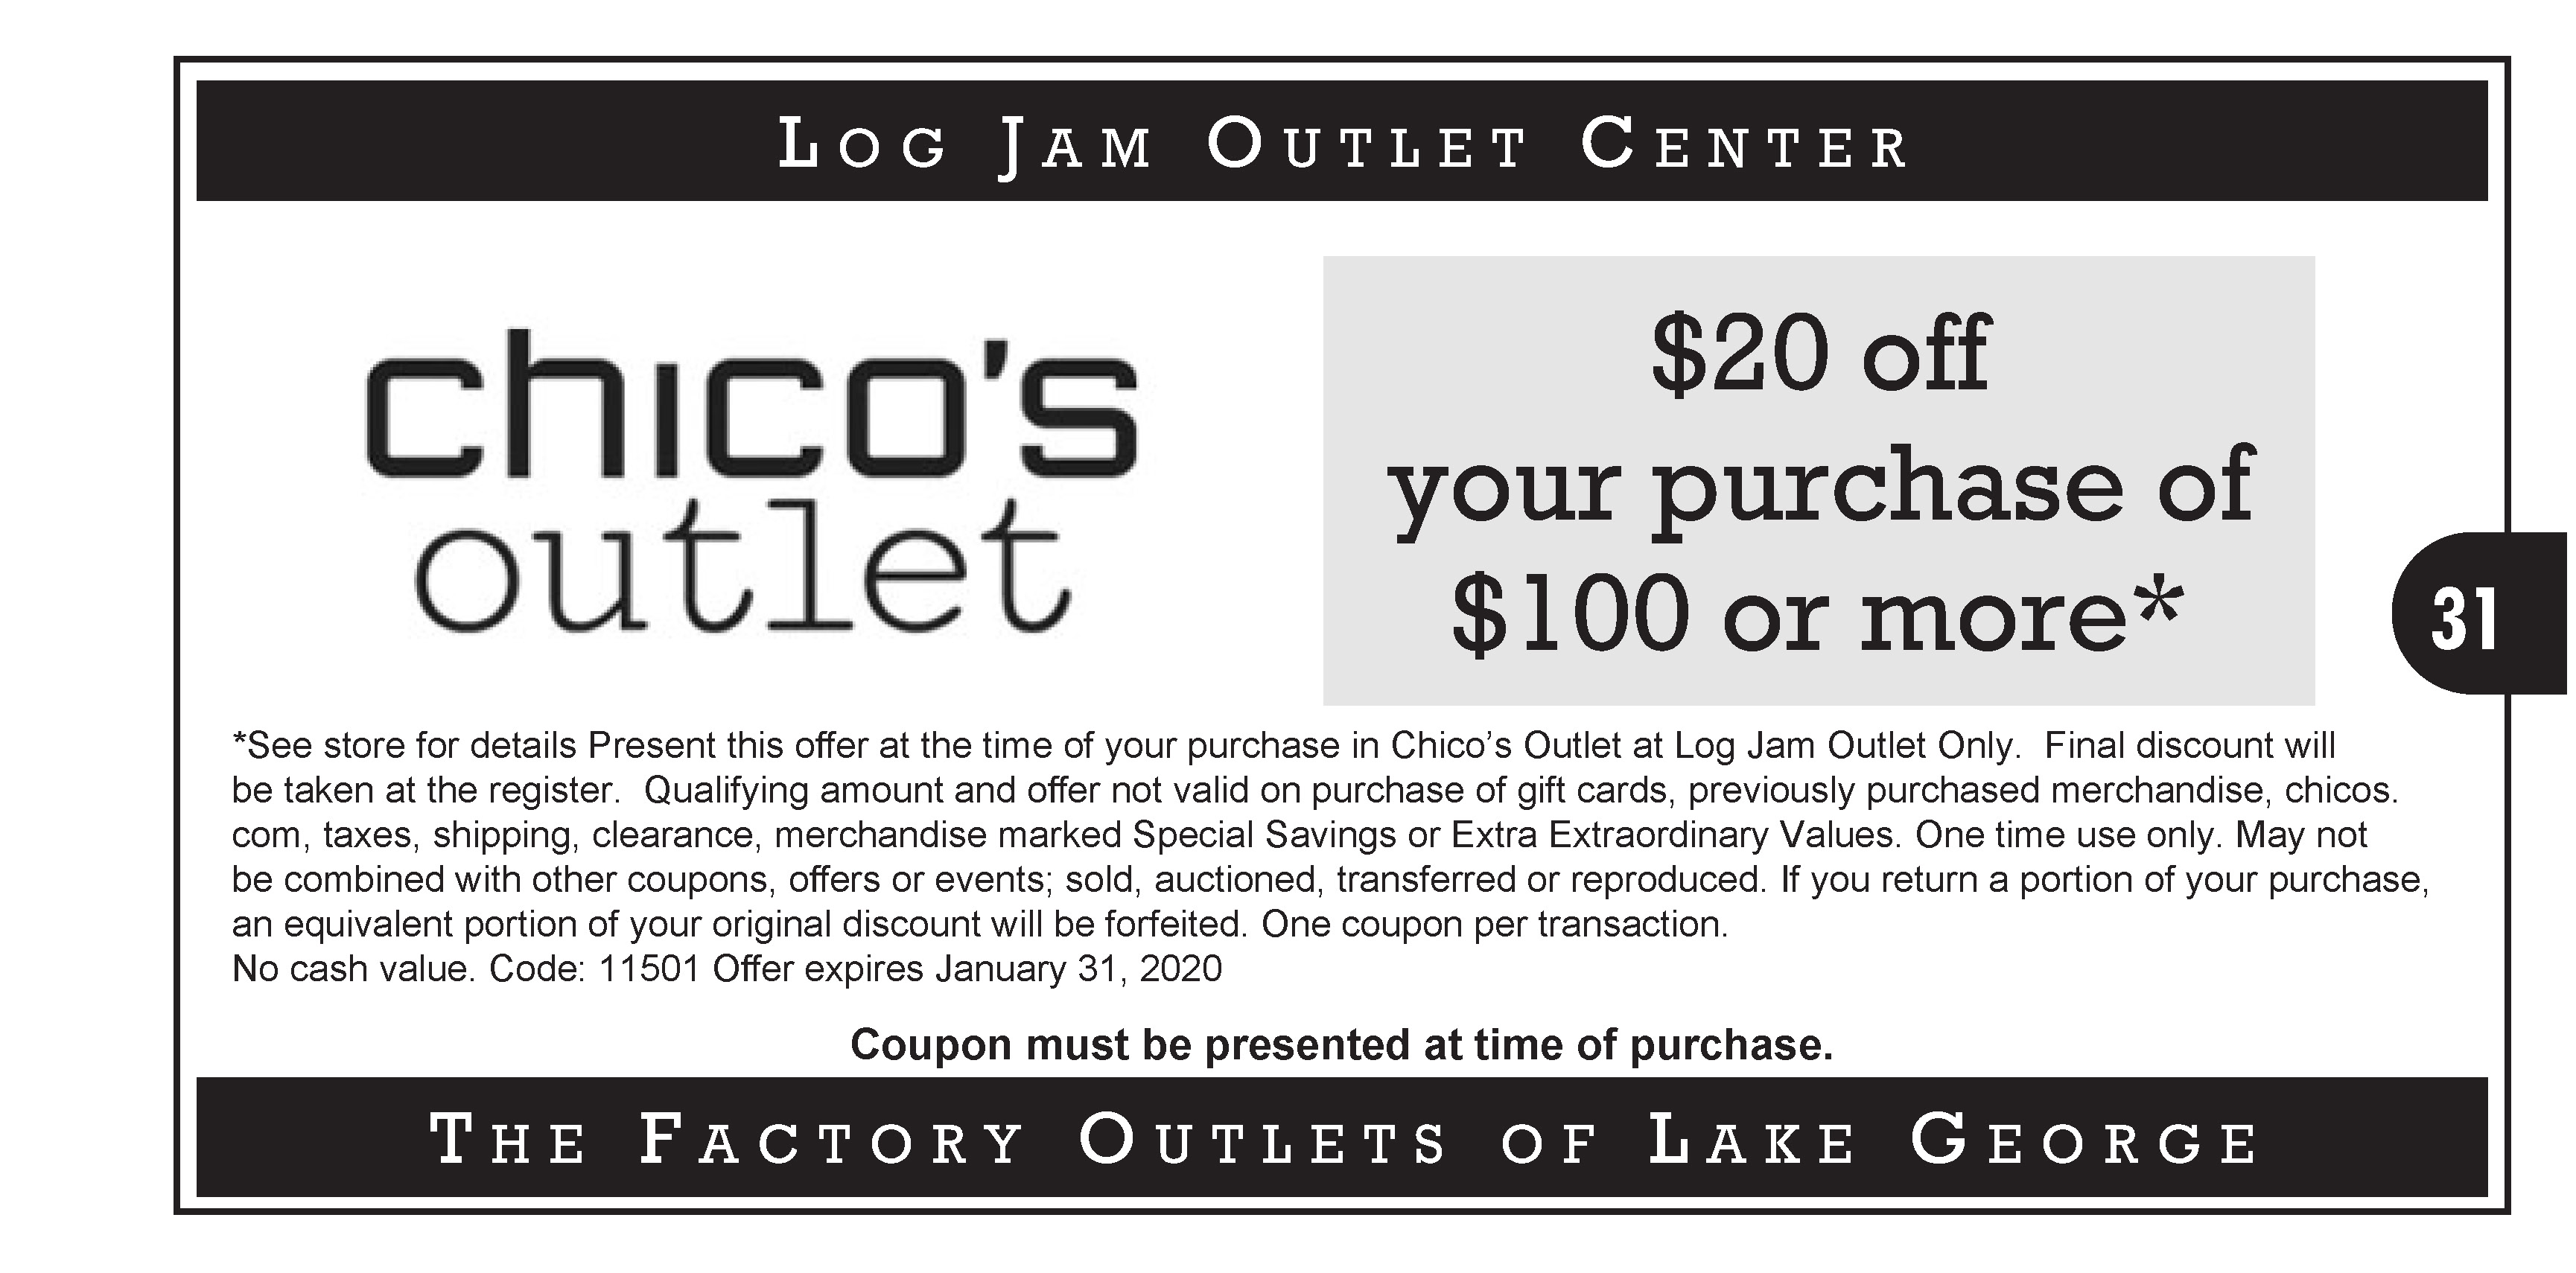 Chico's Outlet